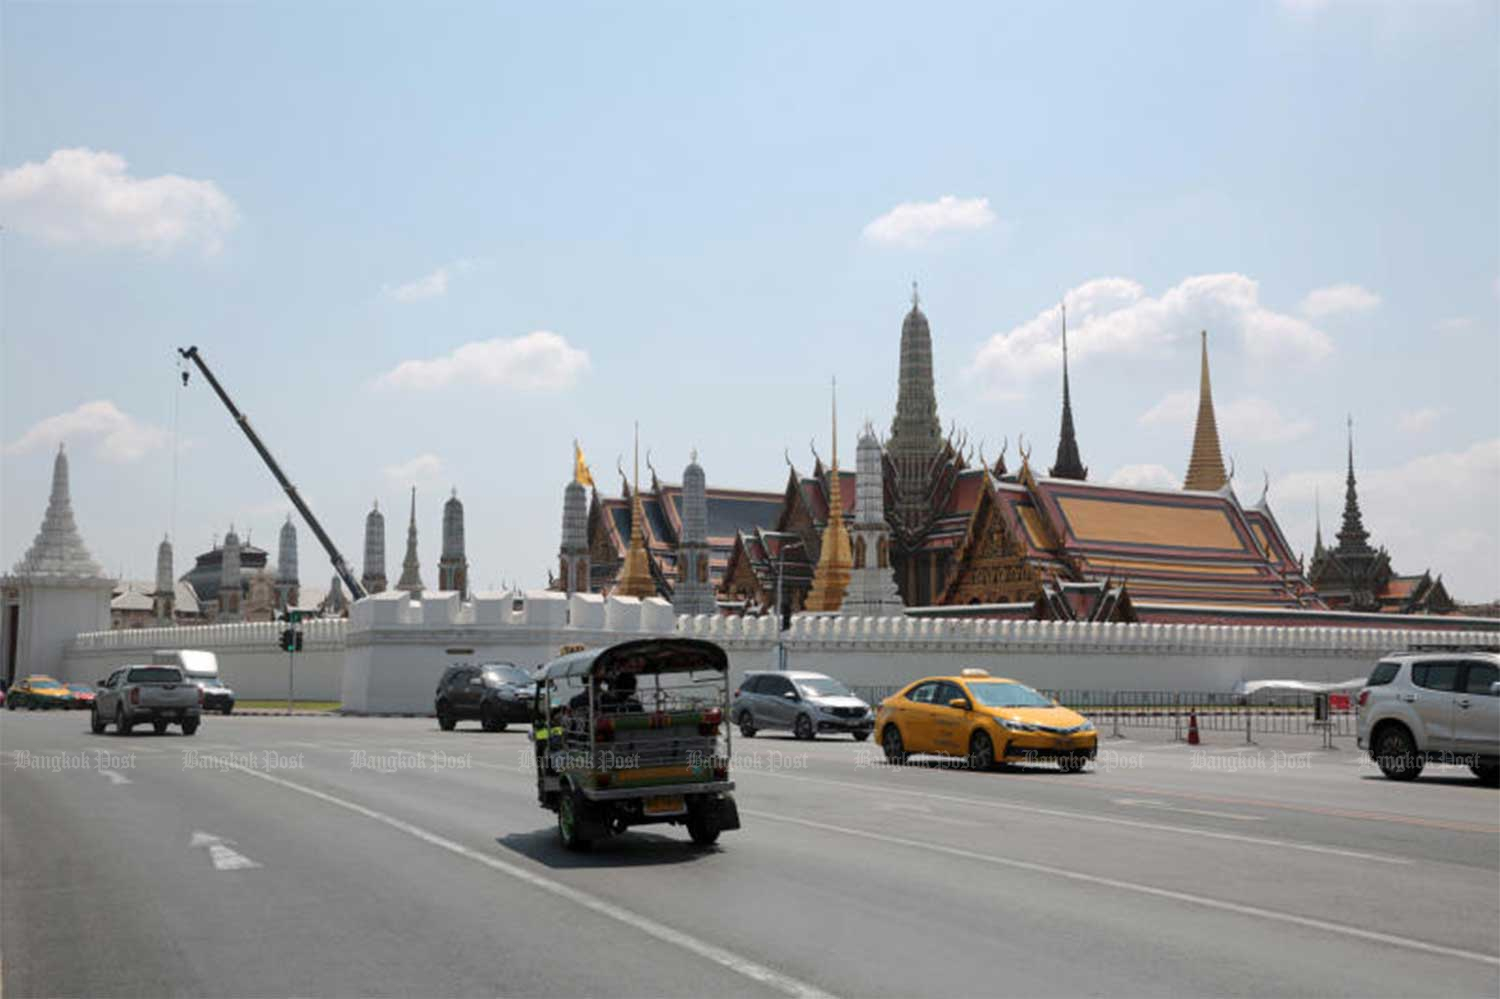 Grand Palace, 5 other locations reopen Thursday